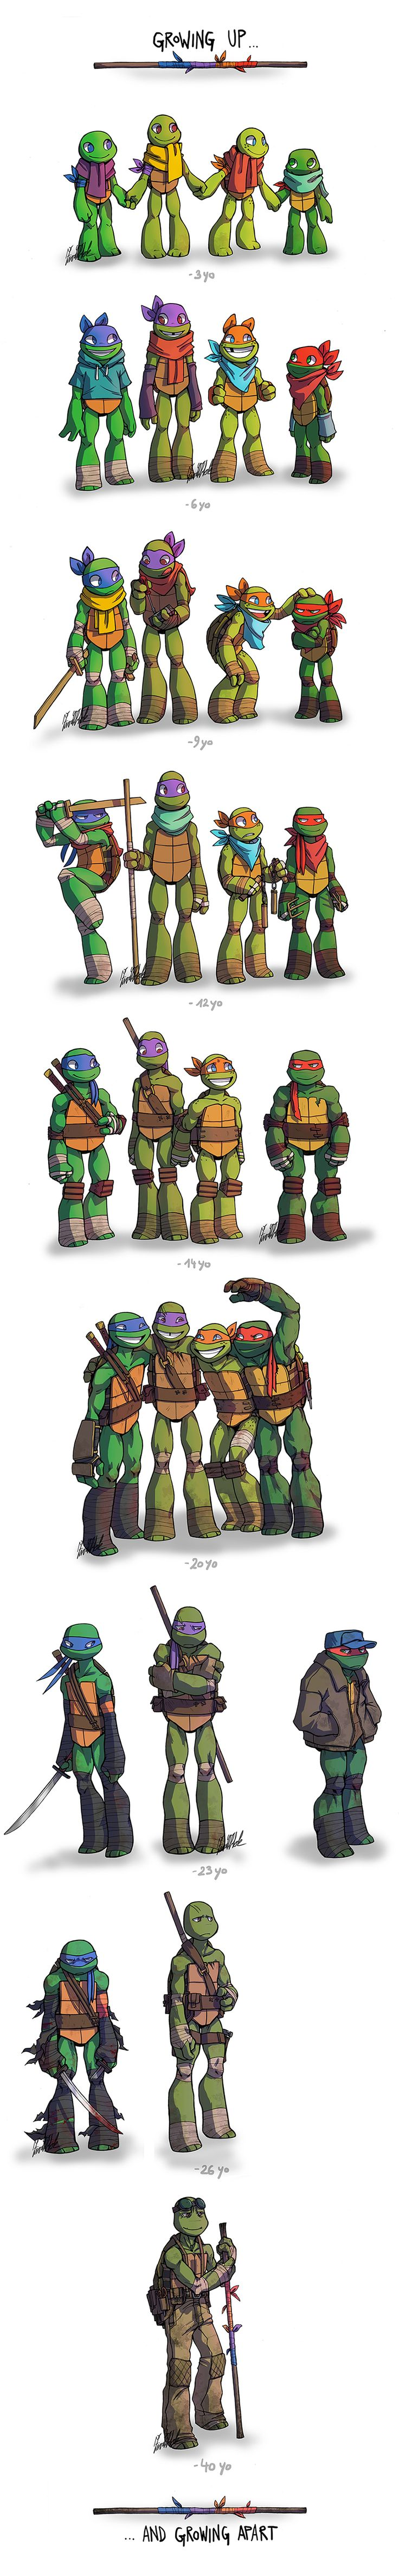 THEY ALL JUST LOOK DEAD INSIDE AFTER MIKEY DOES BC HES THE ONE WHO JOKED THE MOST EVEN IF HE WAS ANNOYING AND KINDA A LITTLE DUMB THE PURE CINNAMON ROLL HAS LEFT THE WORLD THAT HE WAS TOO GOOD FOR AND THEN RAPH DIES AND WHAT LITTLE HOPE THEY HAD IS GONA AND THEN ITS JUST DONNIE REMEMBERING THE GOOD TIMES BUT HE KNOWS HE DOESNT HAVE MUCH TIME TO HE TIES HIS MASK ONTO HIS STAFF WITH THE OTHERS